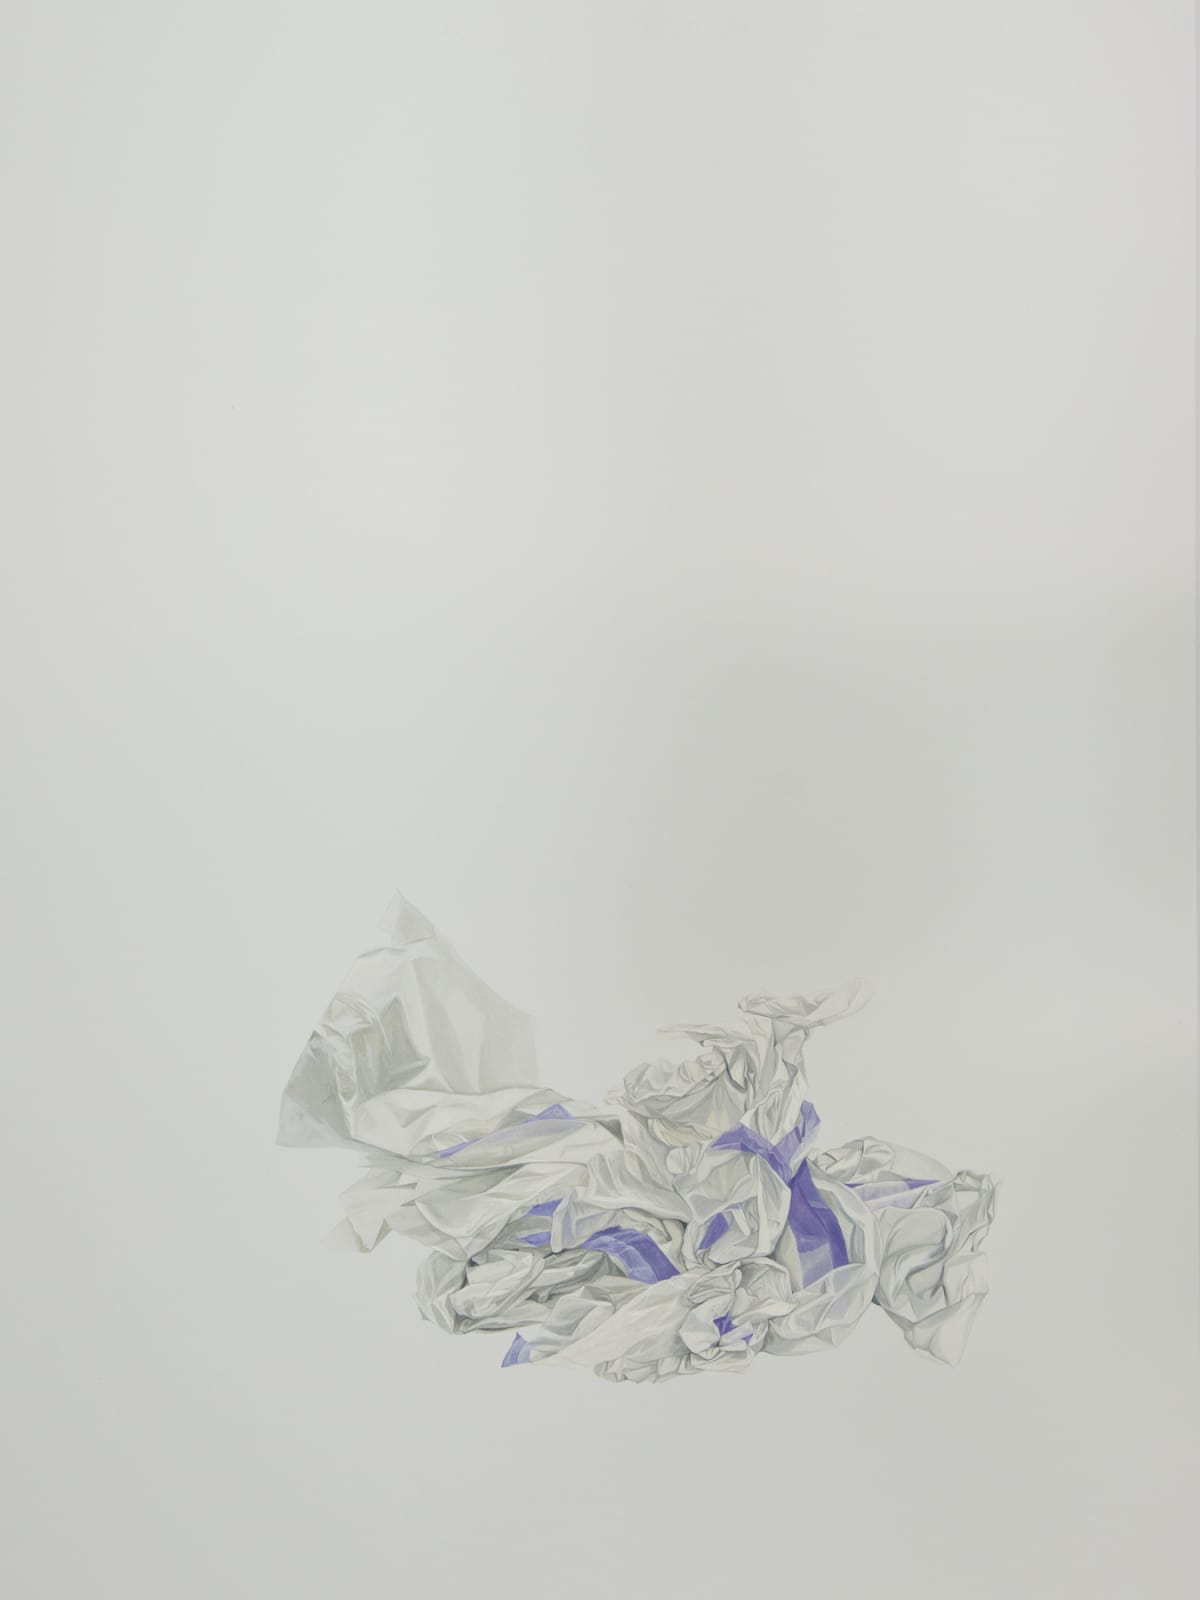 Marita Hewitt Waste Paper Series; Used Tissue and Tape (Incidental), 2015 Watercolour on paper 34.3 x 26 in 87 x 66 cm